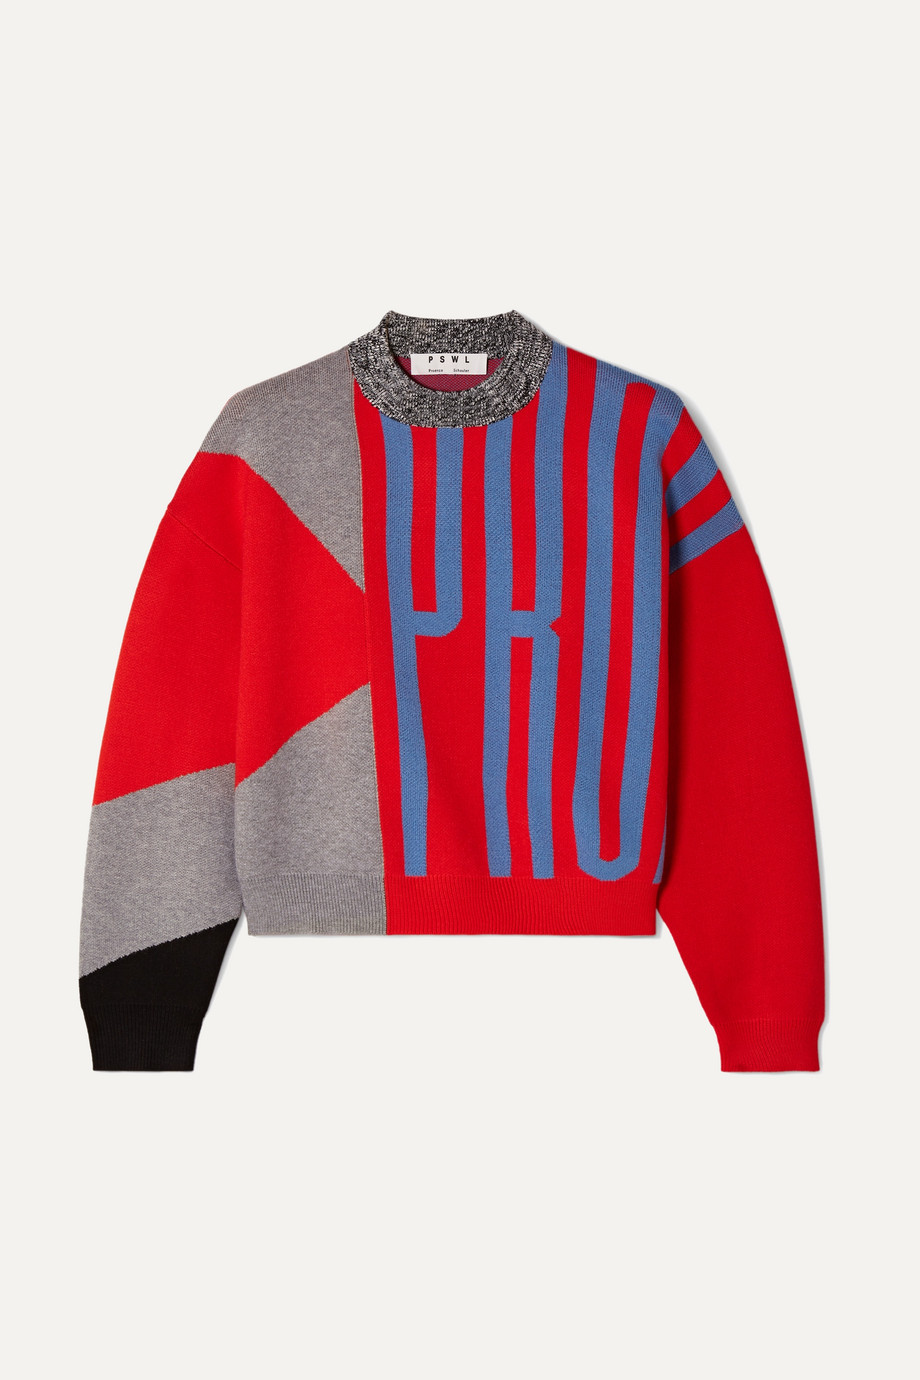 Pswl Sweater by Proenza Schouler, available on net-a-porter.com for $395 Olivia Culpo Outerwear Exact Product